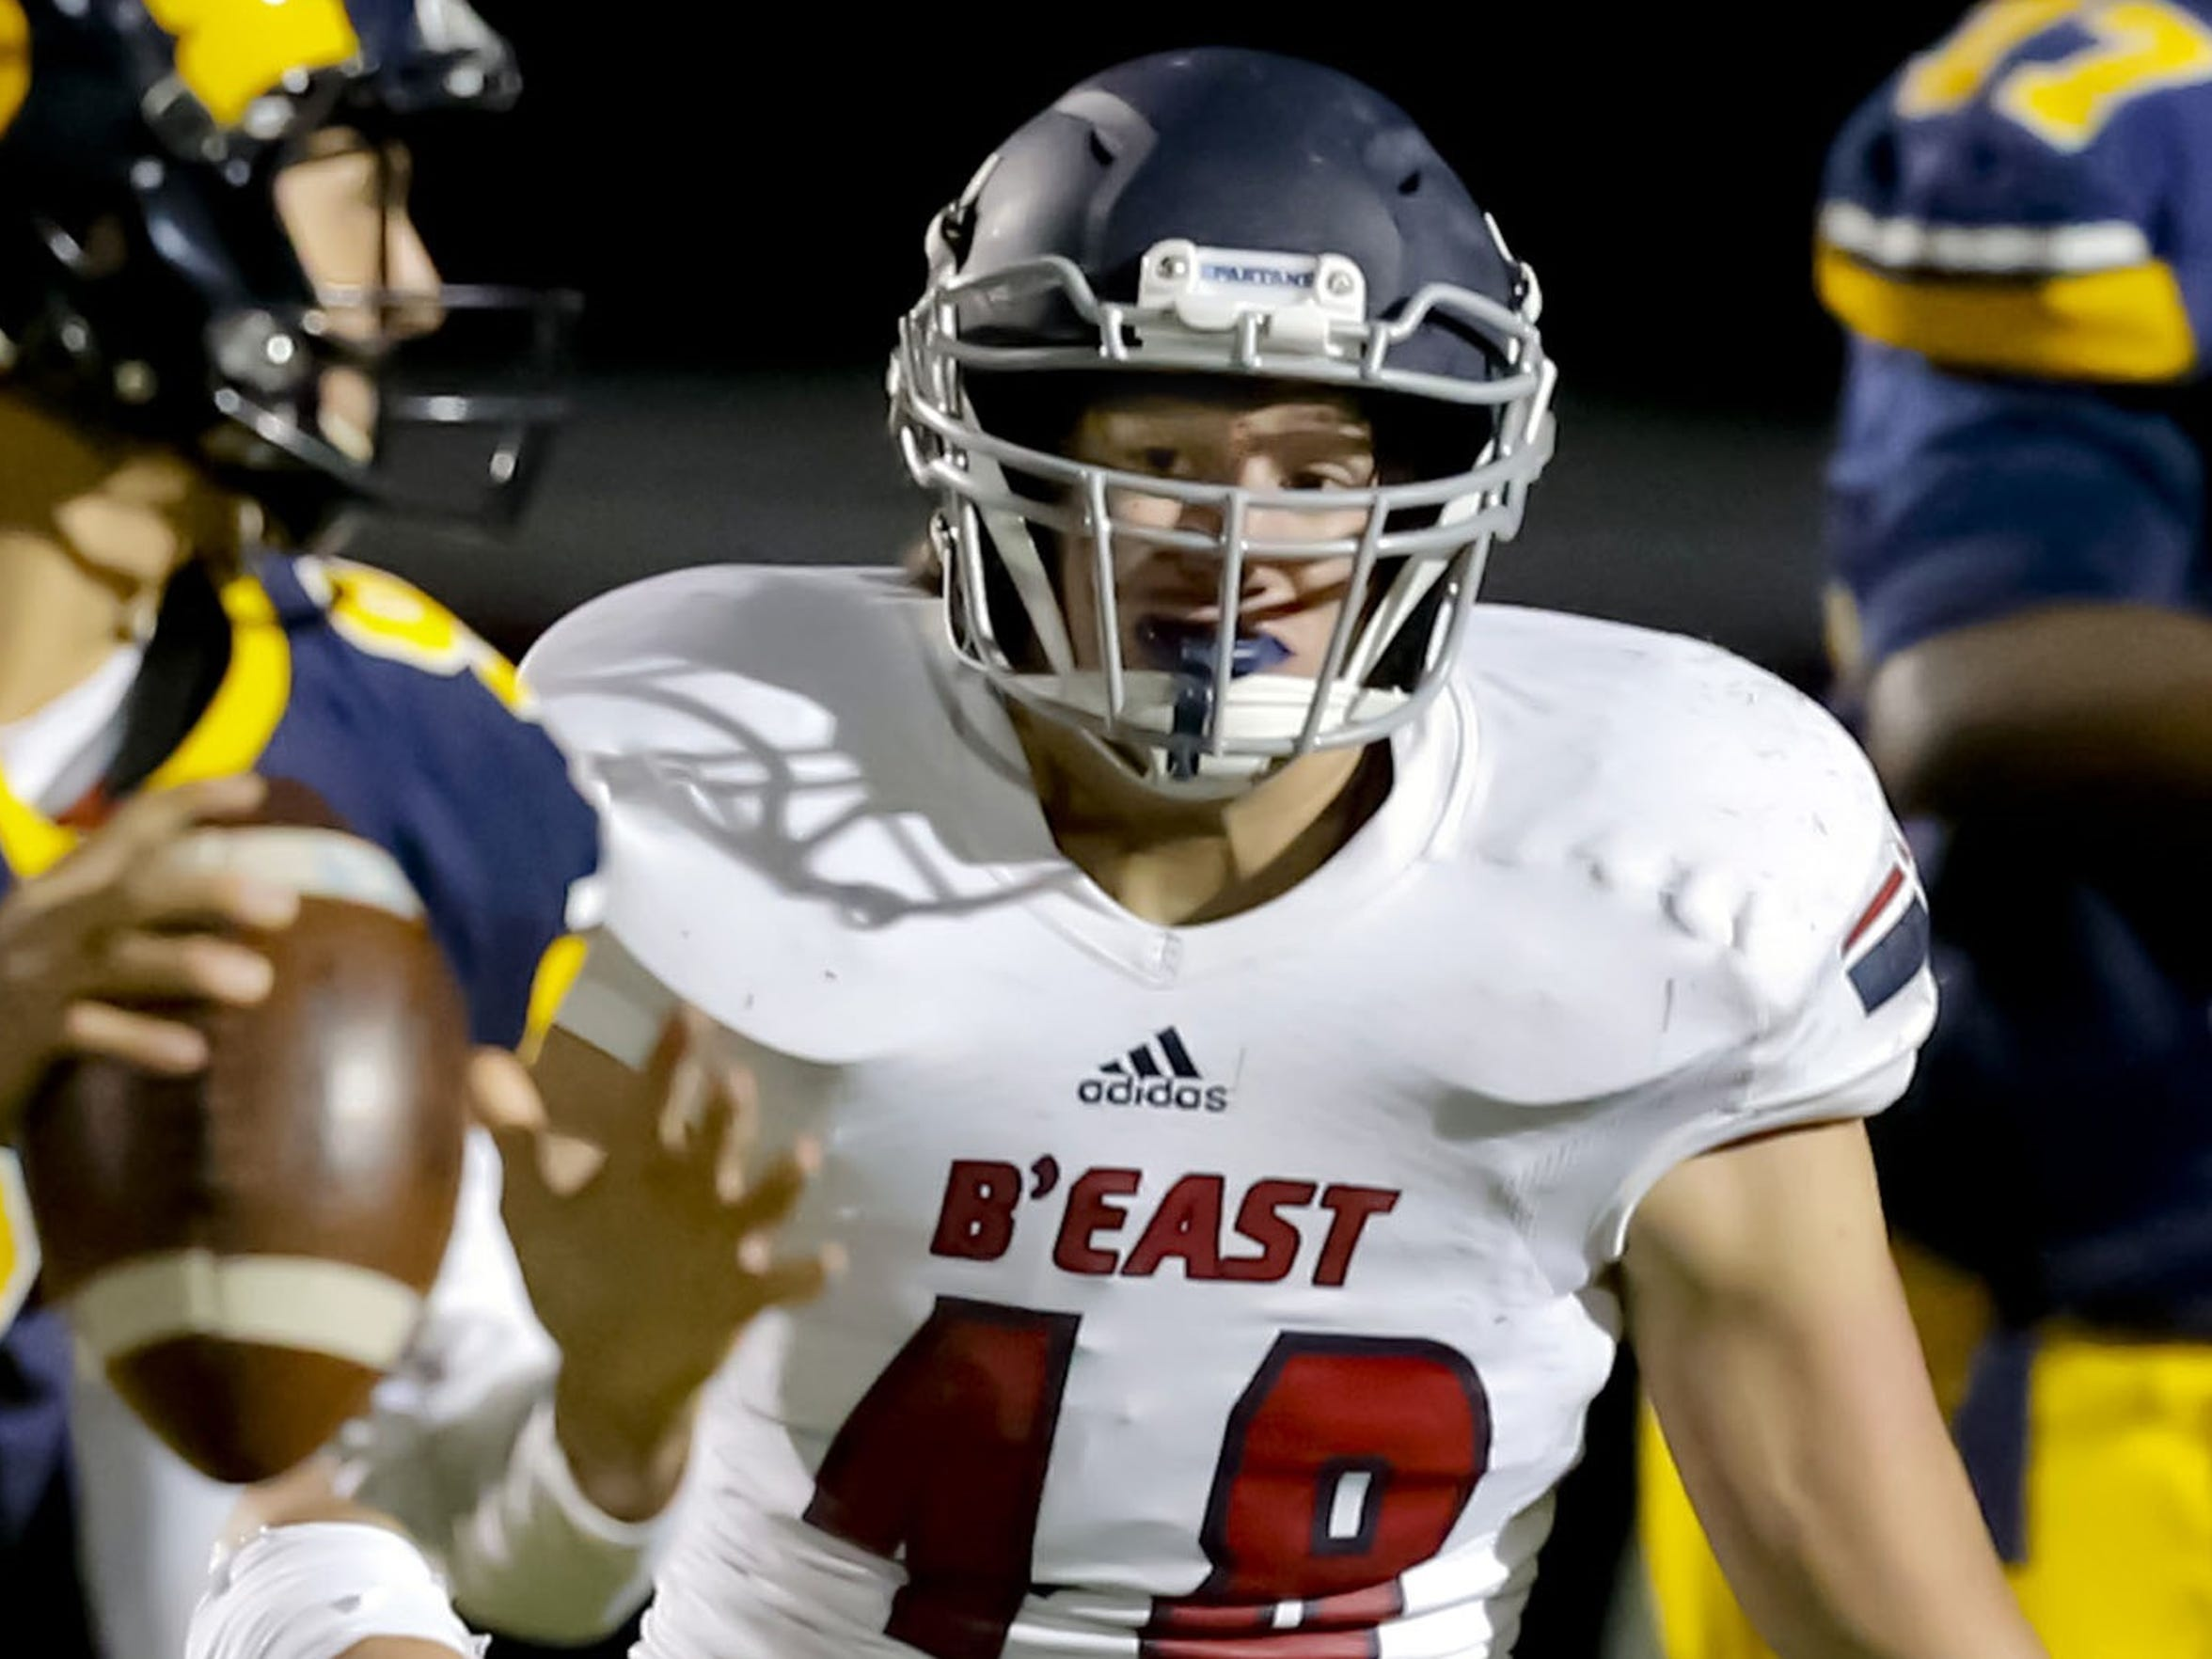 Bradley Dati and the Brookfield East defense had five shutouts in 12 games this season. The Spartans allowed just 9.7 points per game.